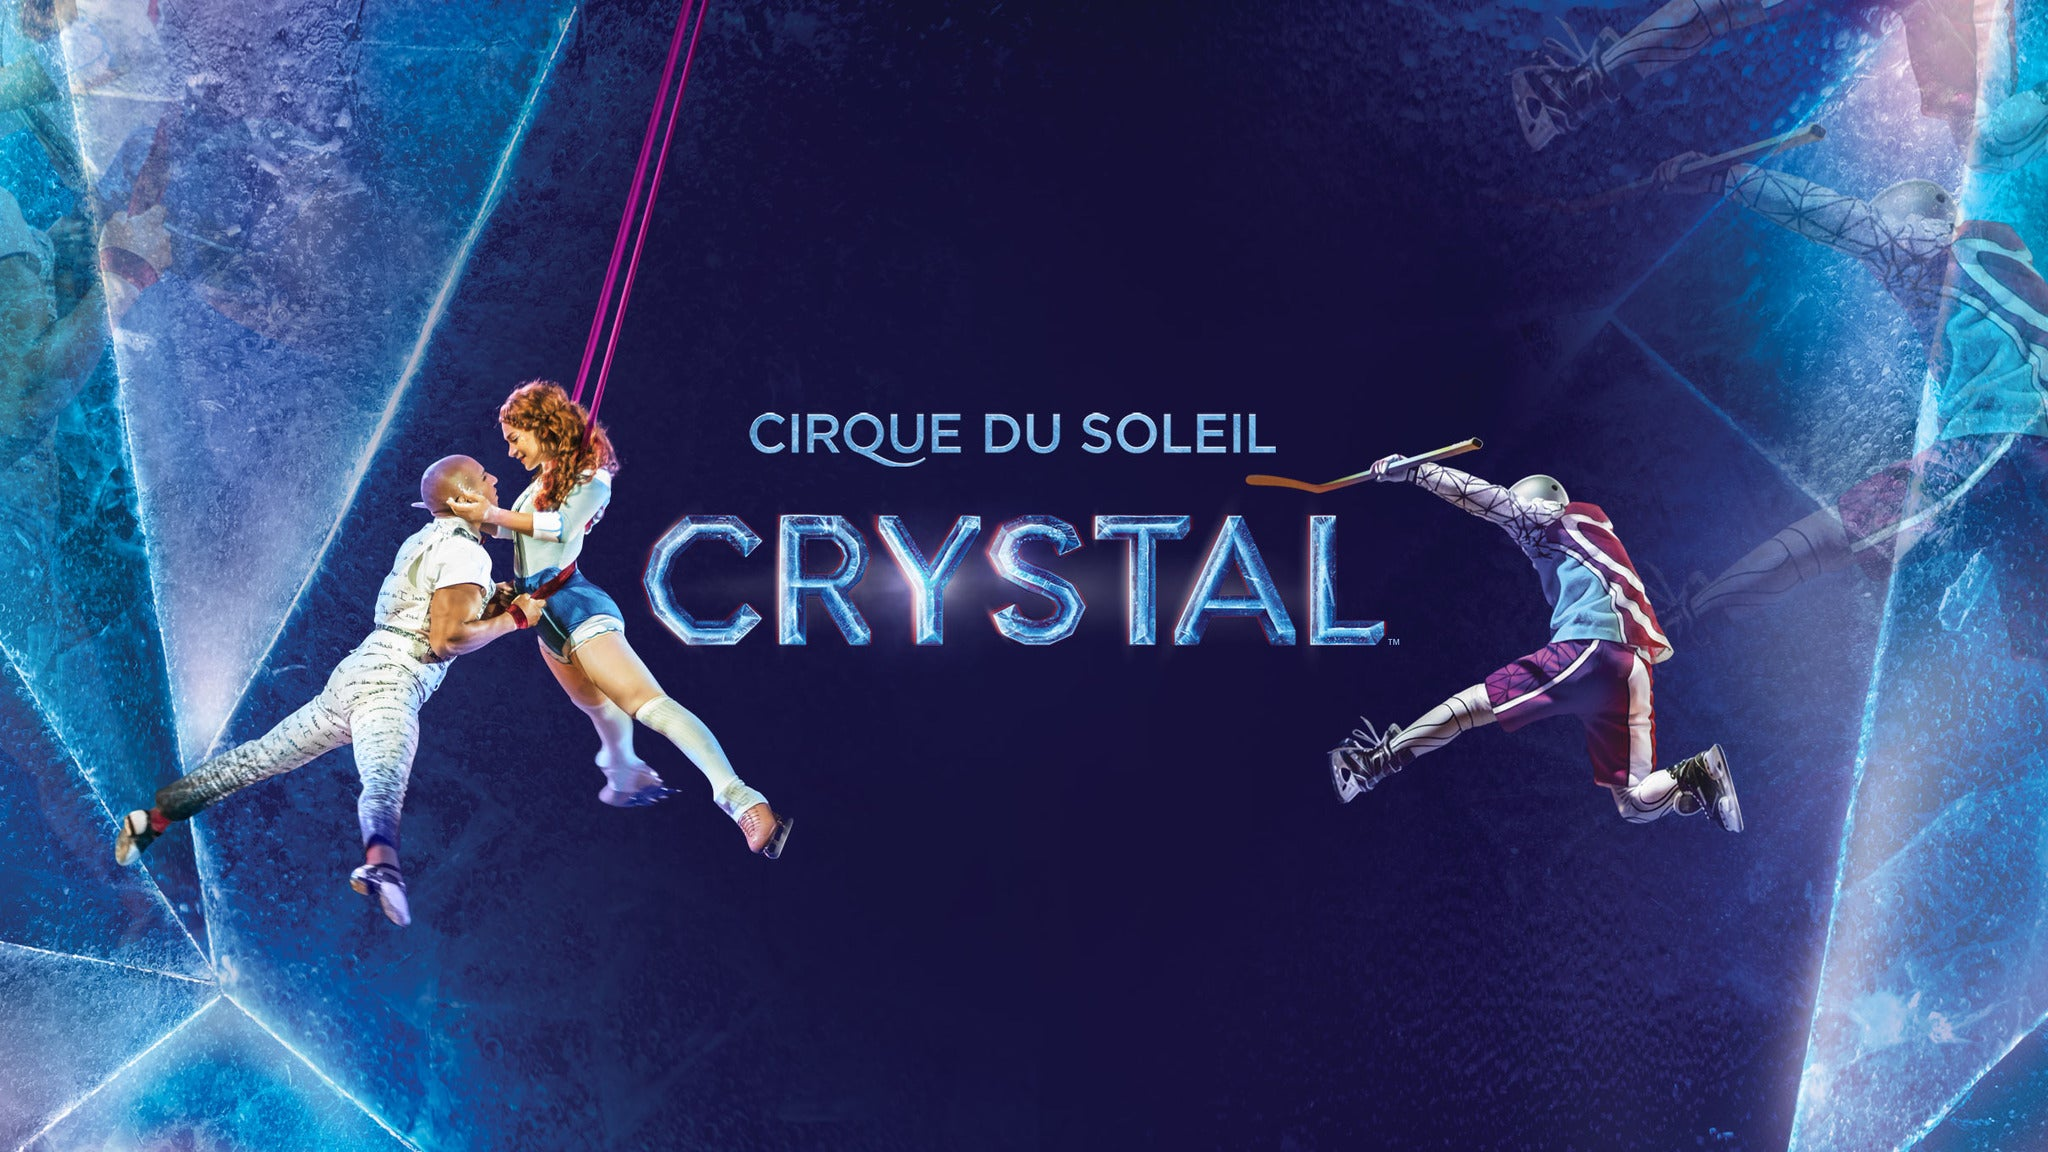 Cirque du Soleil Crystal at BancorpSouth Arena